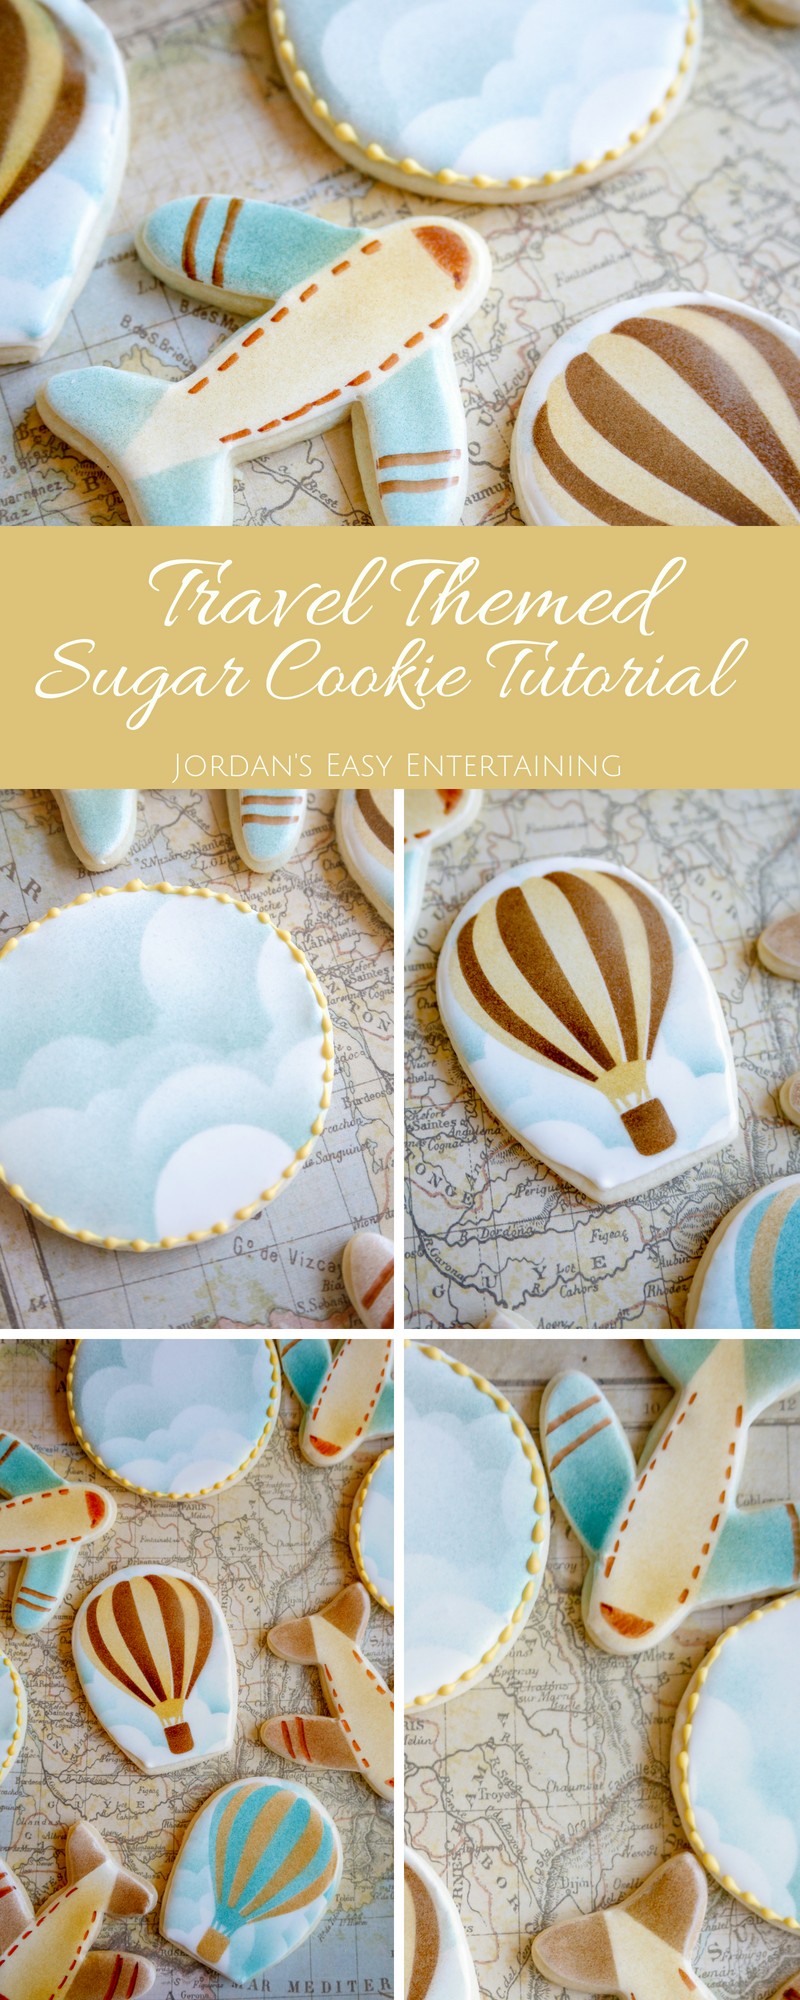 Follow this tutorial to make beautiful travel themed sugar cookies in no time!